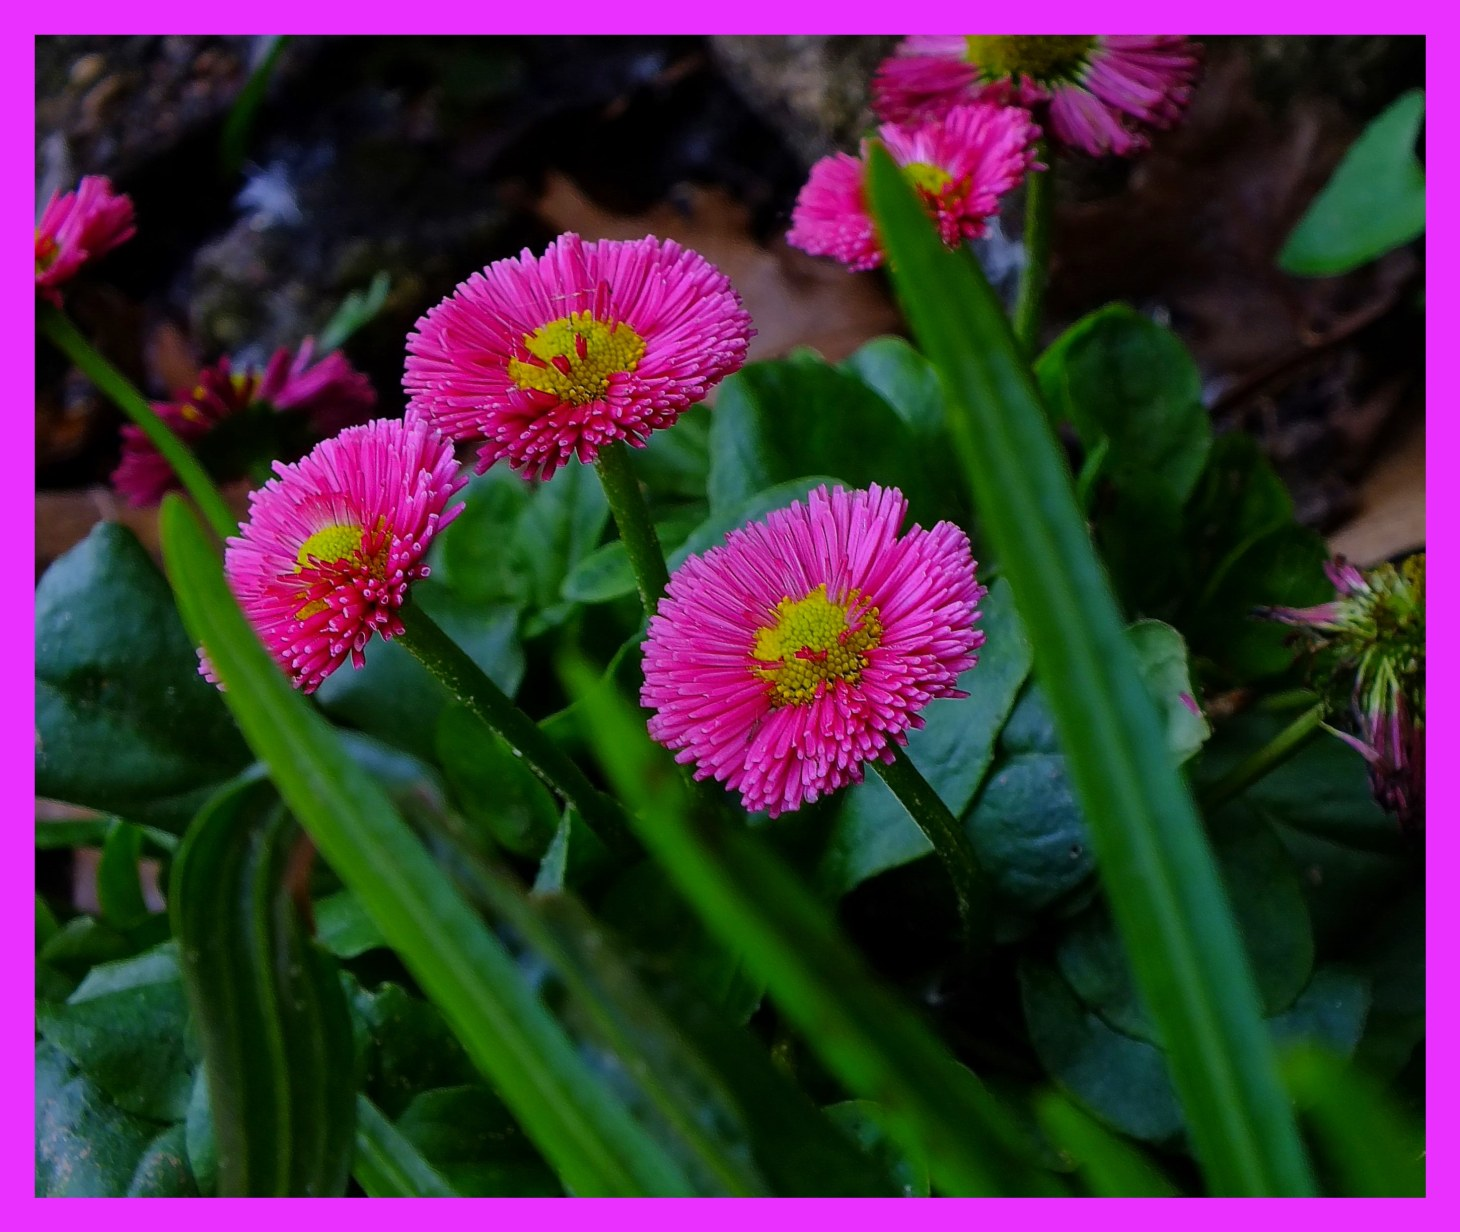 Bellis Perennial. (1) Photo by Thomas Peace c. 2016